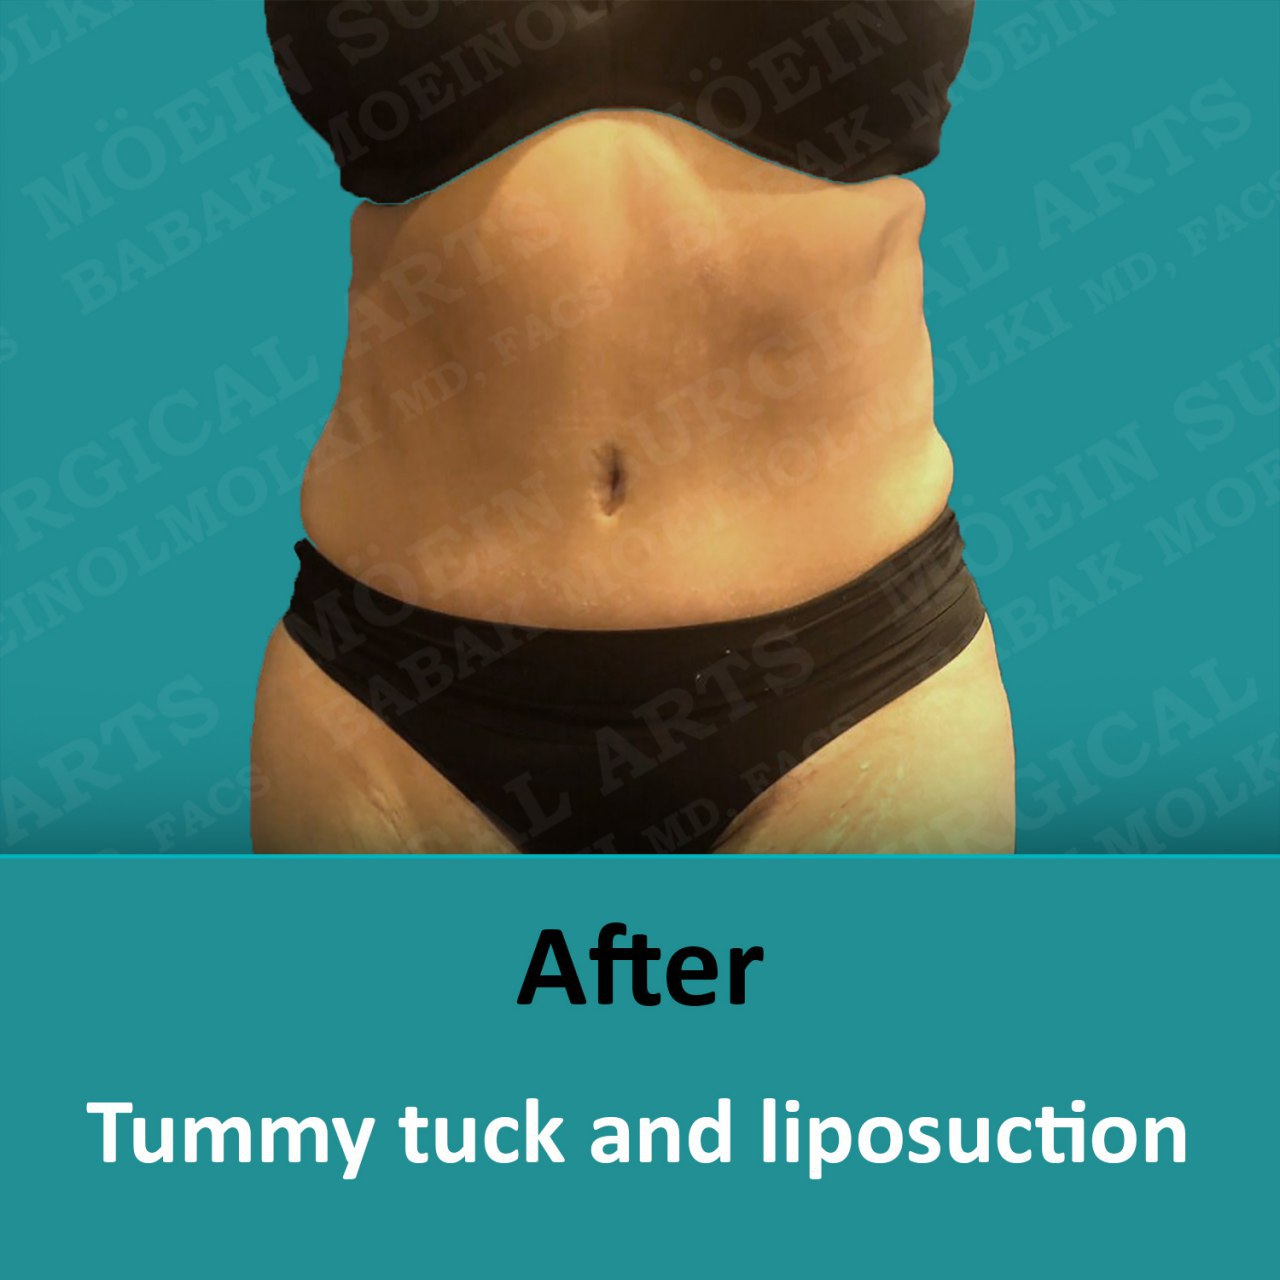 Tummy tuck liposuction after